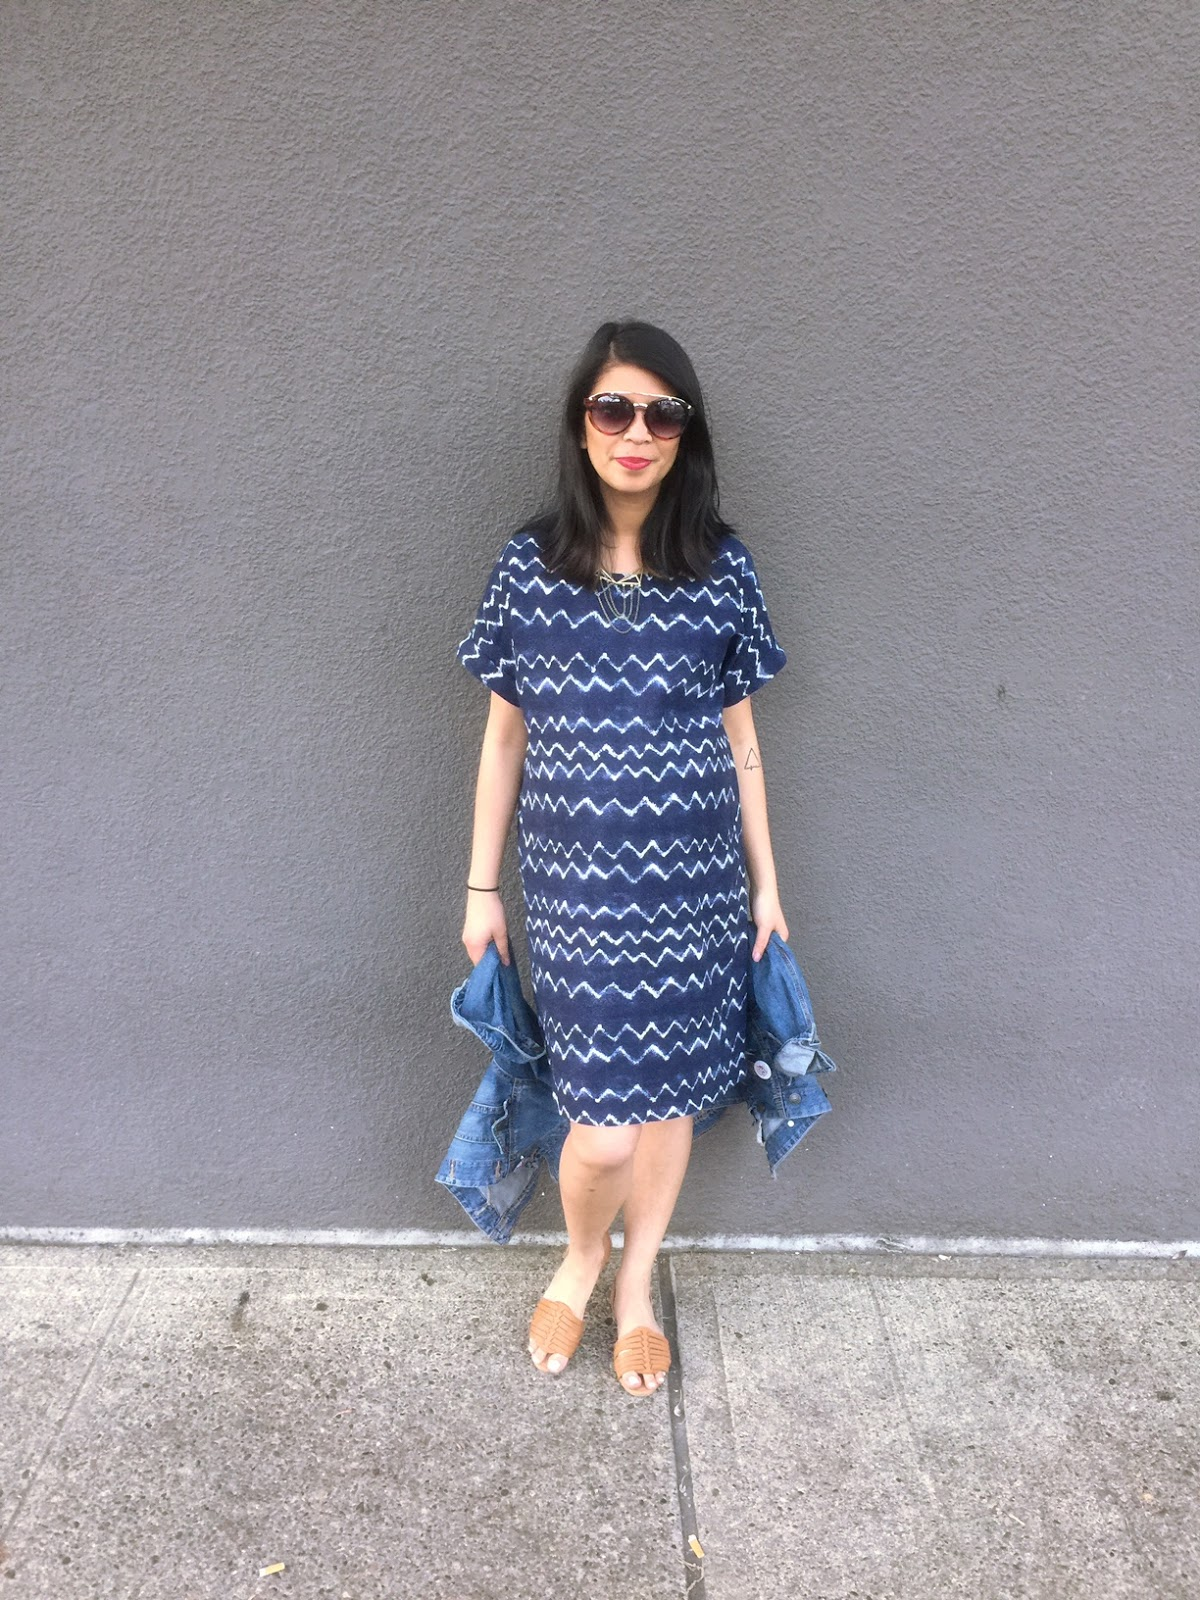 old navy style, shift dress, blue printed dress, shirt dress, pregnancy style, spring 2016, neutral sandals, sundglasses, style the bump, the ptowngirls, portland fashion blogger